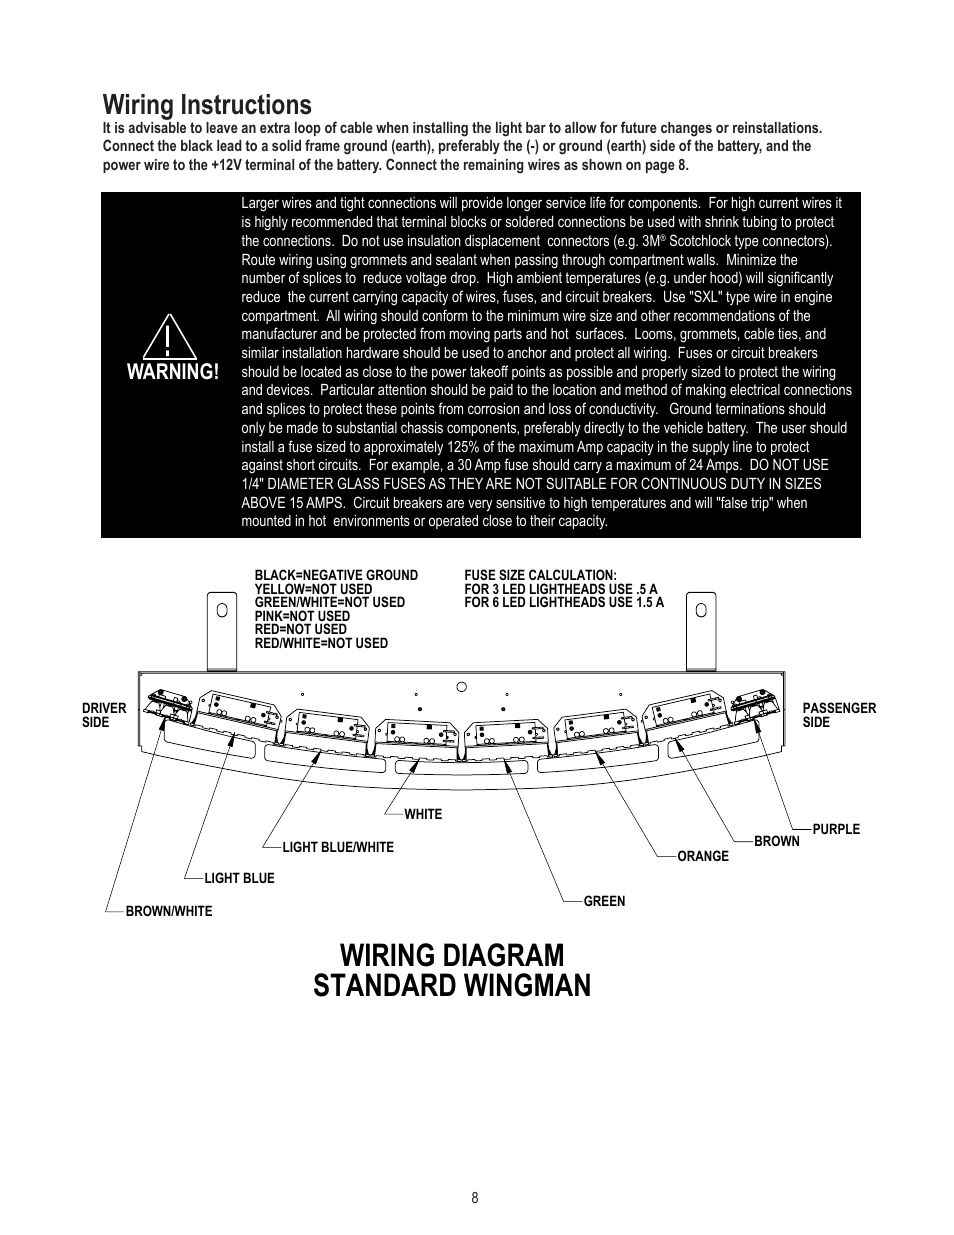 Code 3 Wingman Wiring Diagram Complete Diagrams Mx7000 Light Bar Standard Instructions Warning Rh Manualsdir Com Wire Switch